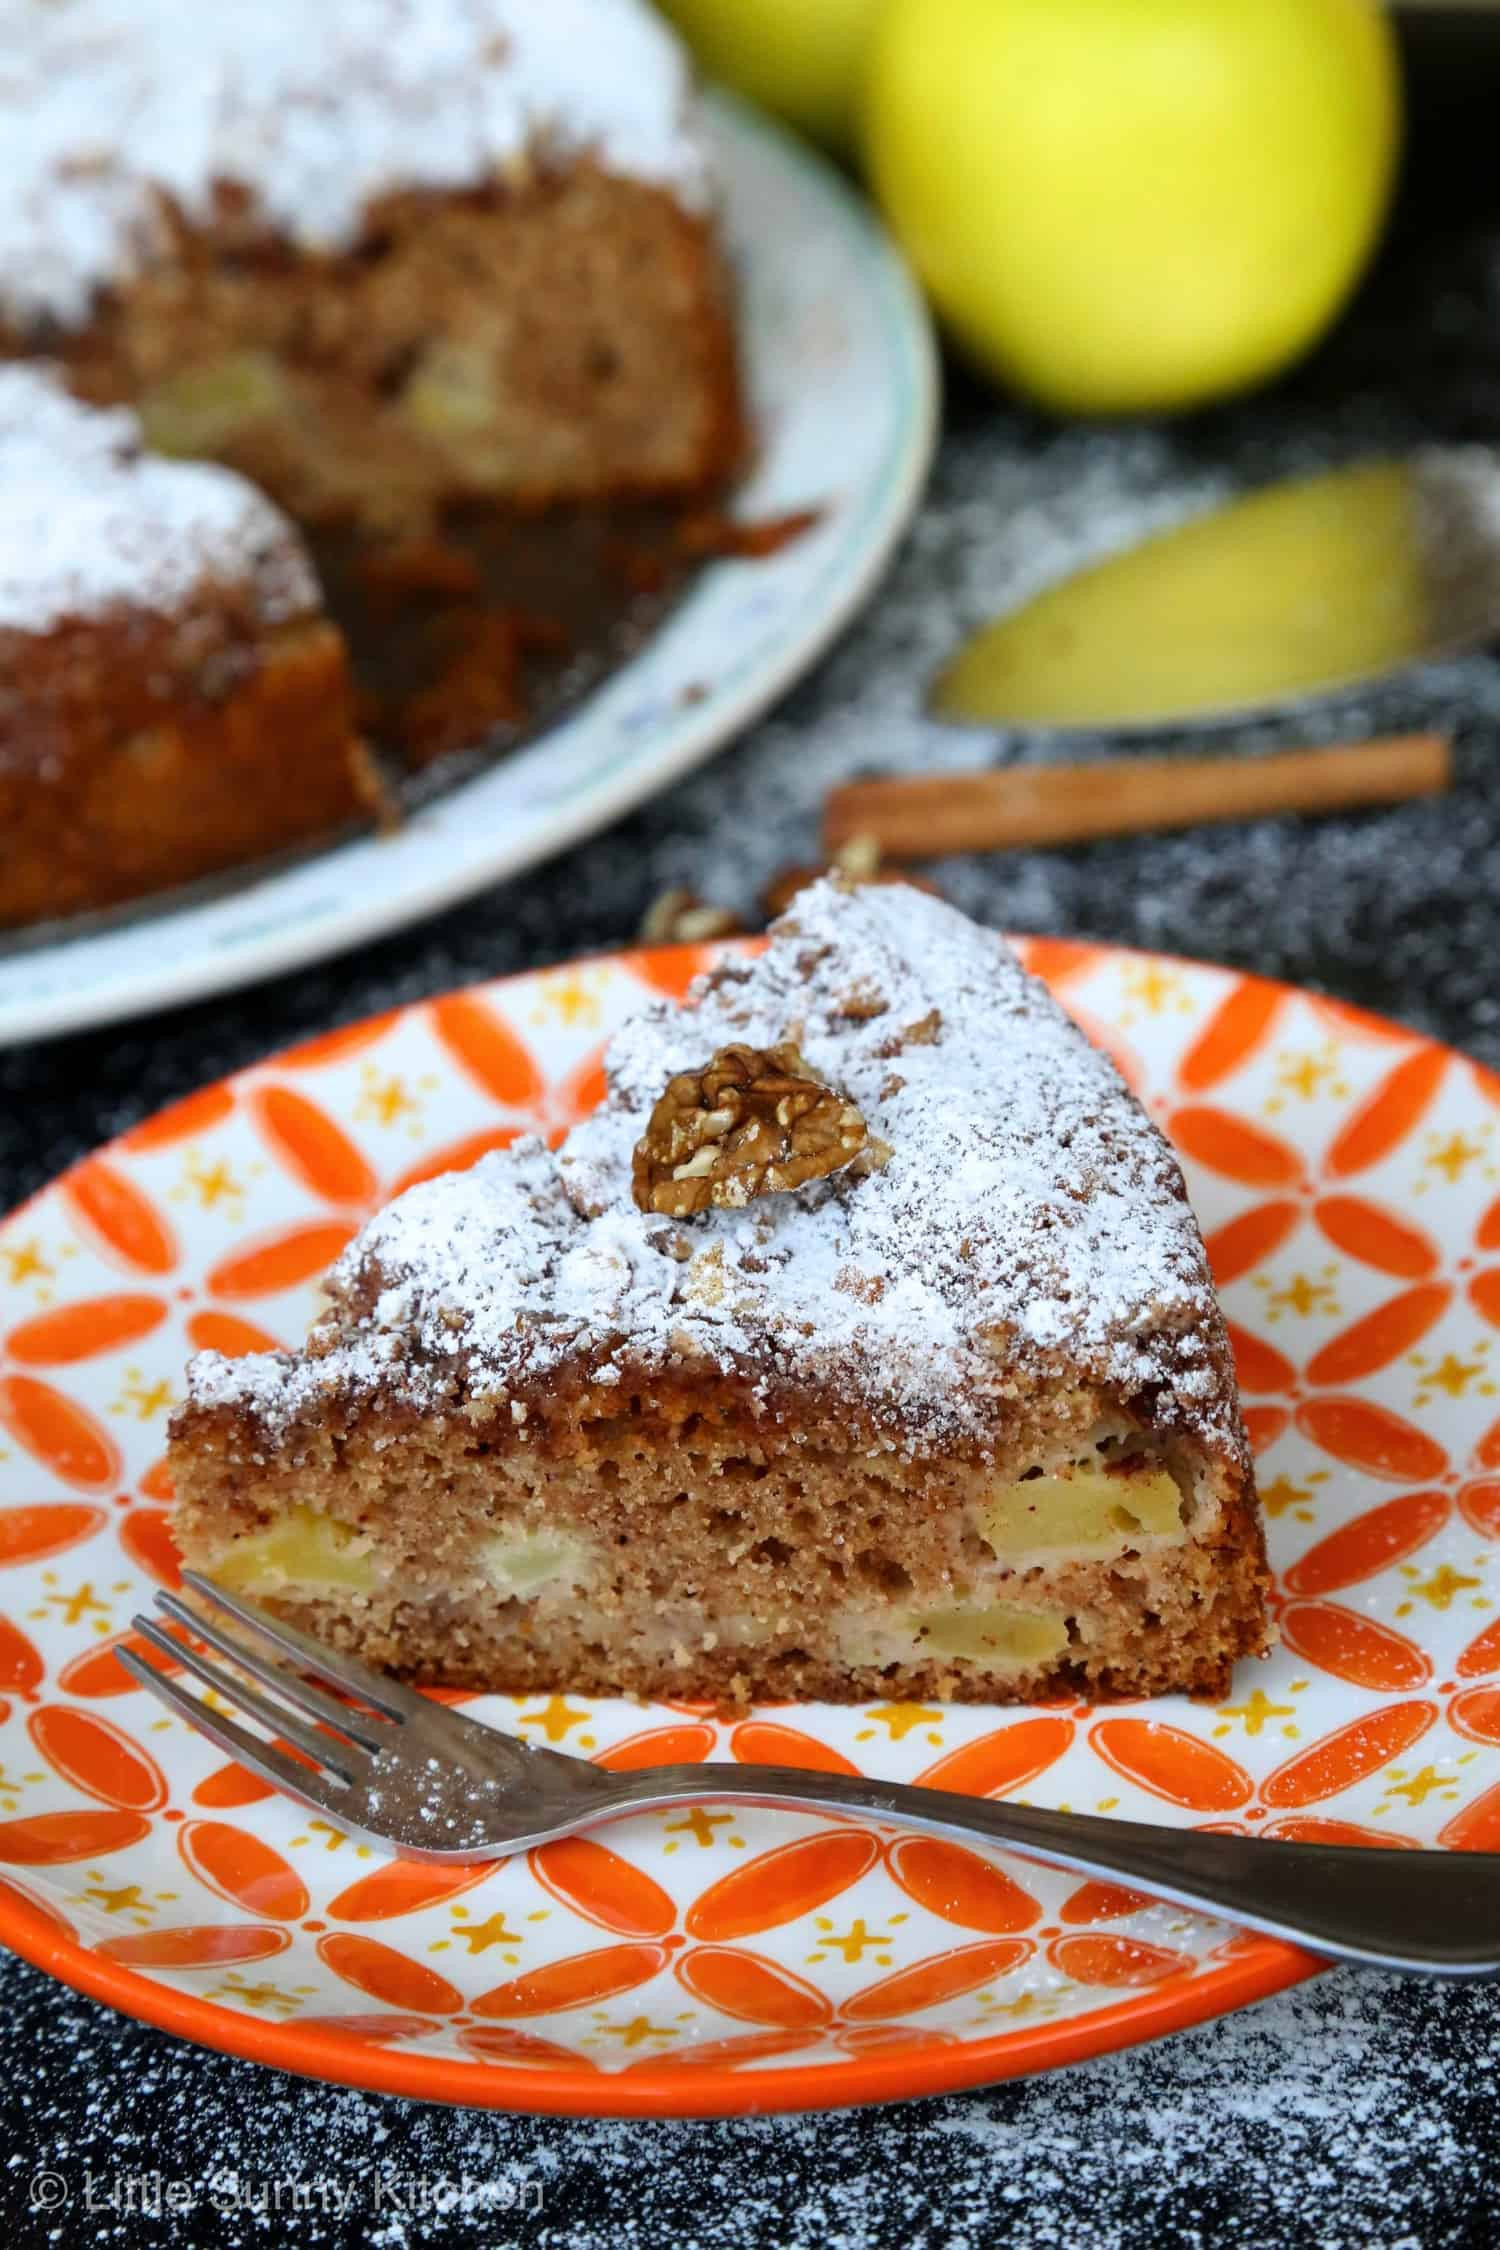 A slice of apple Sharlotka cake topped with powdered sugar served in an orange patterned plate and a fork.